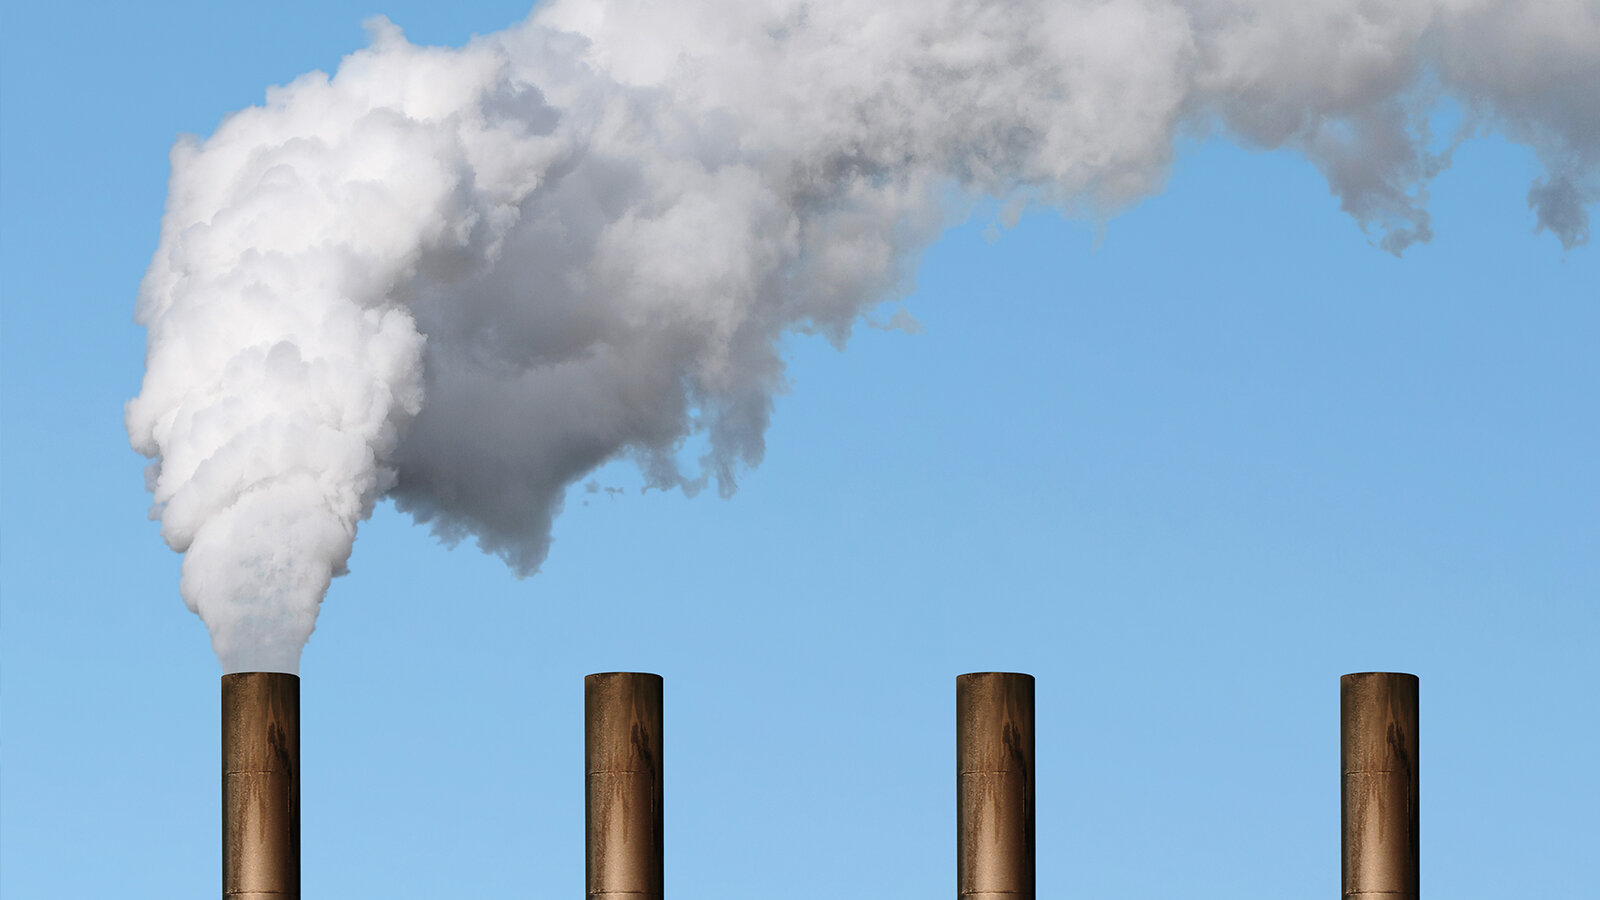 Four industrial smoke stacks with white smoke coming out of one